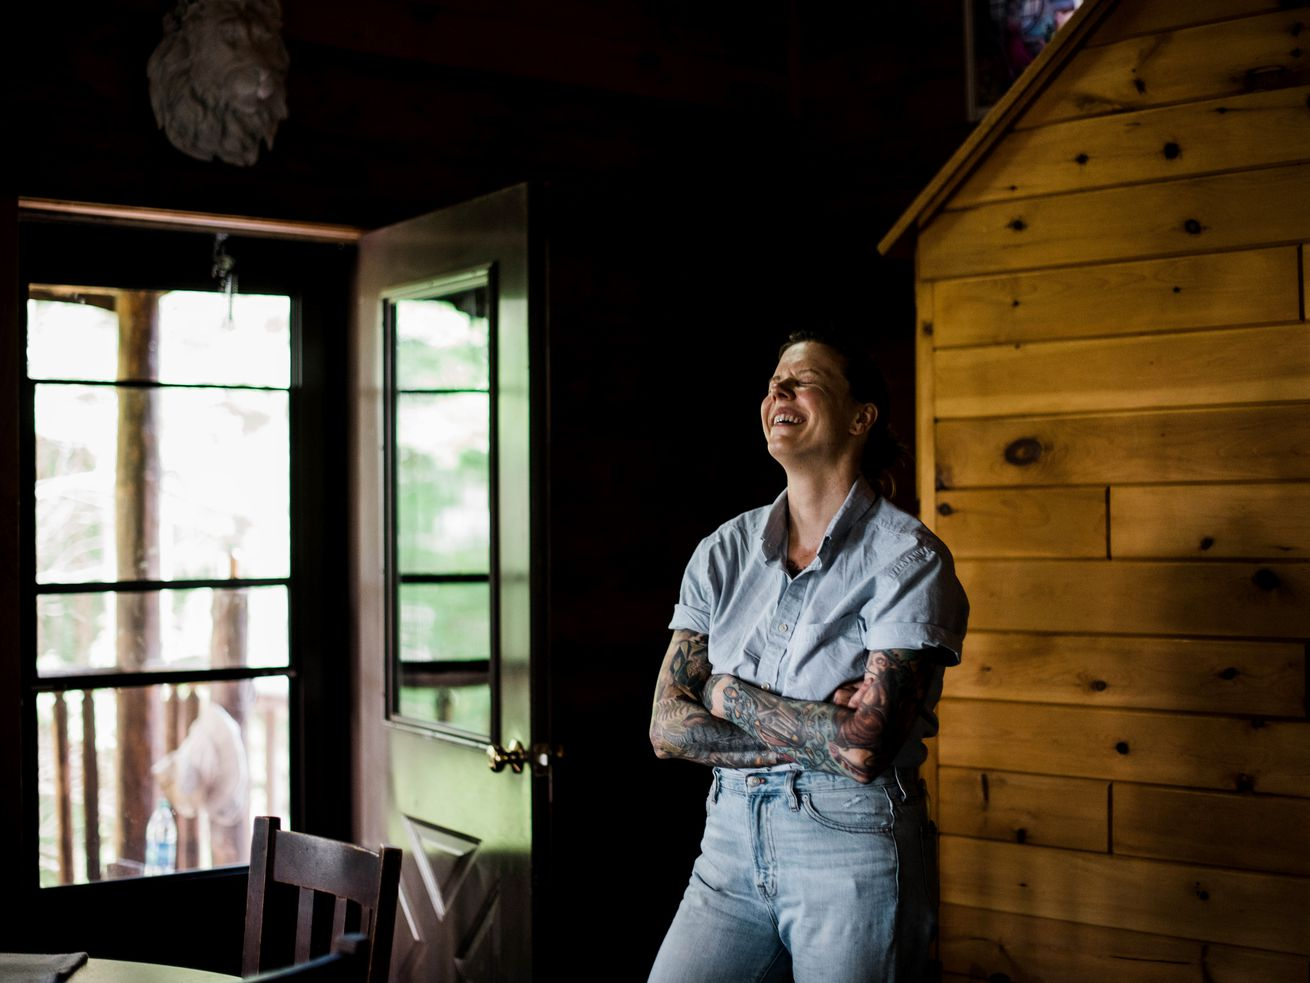 NAHMA TOWNSHIP, MI - JULY 27: The Milkweed Inn is located over 23 miles off the main road and can only be accessed with a 4-wheel drive vehicle. Chicago chef Iliana Regan, who has just written a memoir, and her wife, Anna Regan, opened up their rustic cabin in Michigan's Upper Peninsula to guests who will get an all-inclusive food and wine experience. Iliana Regan laughs with guests inside their inn.